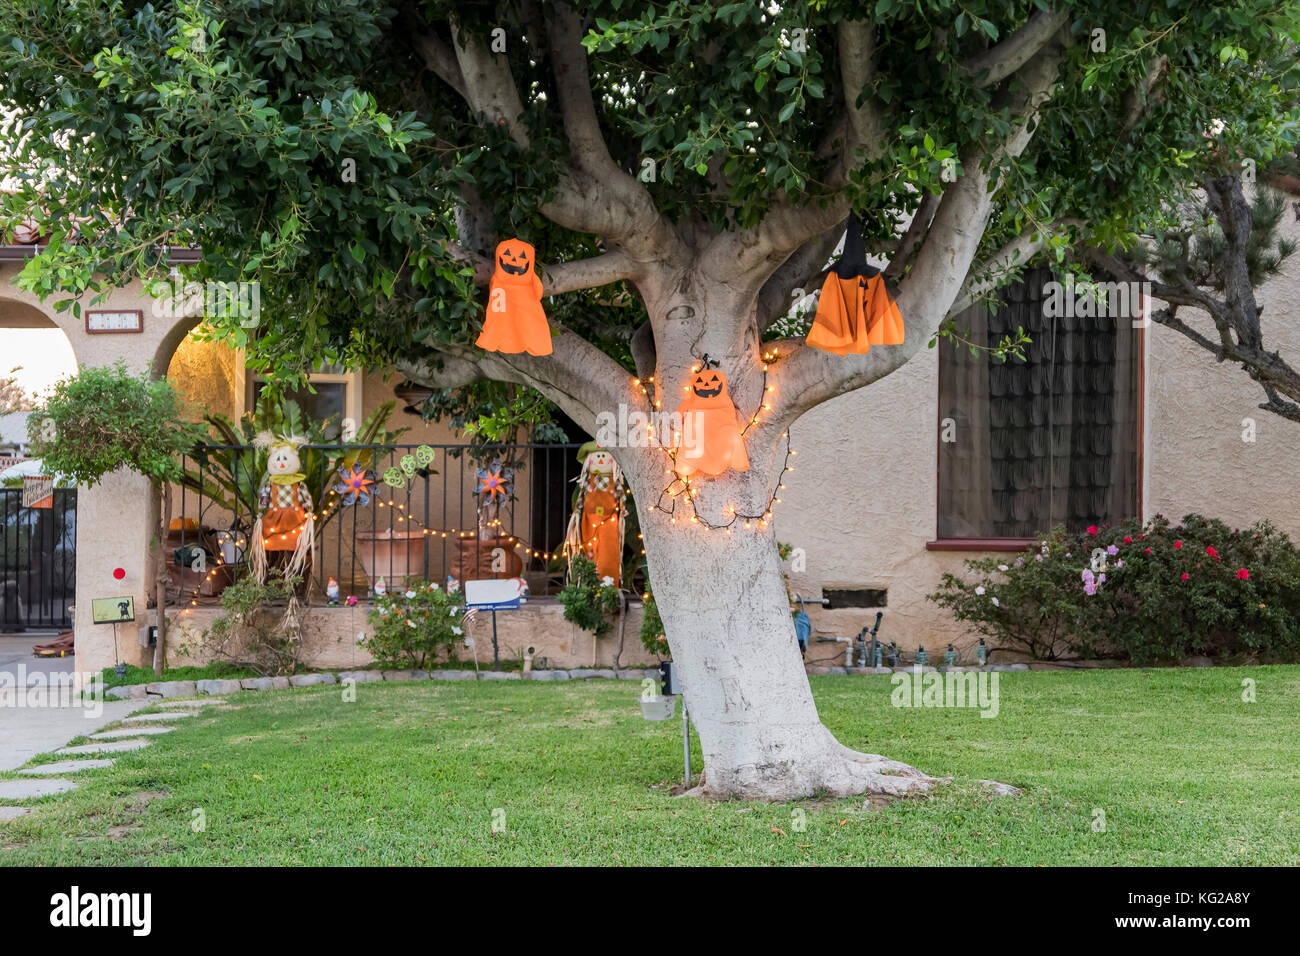 Cute Hallwoeen decoration in a front yard at Los Angeles, California, United States - Stock Image